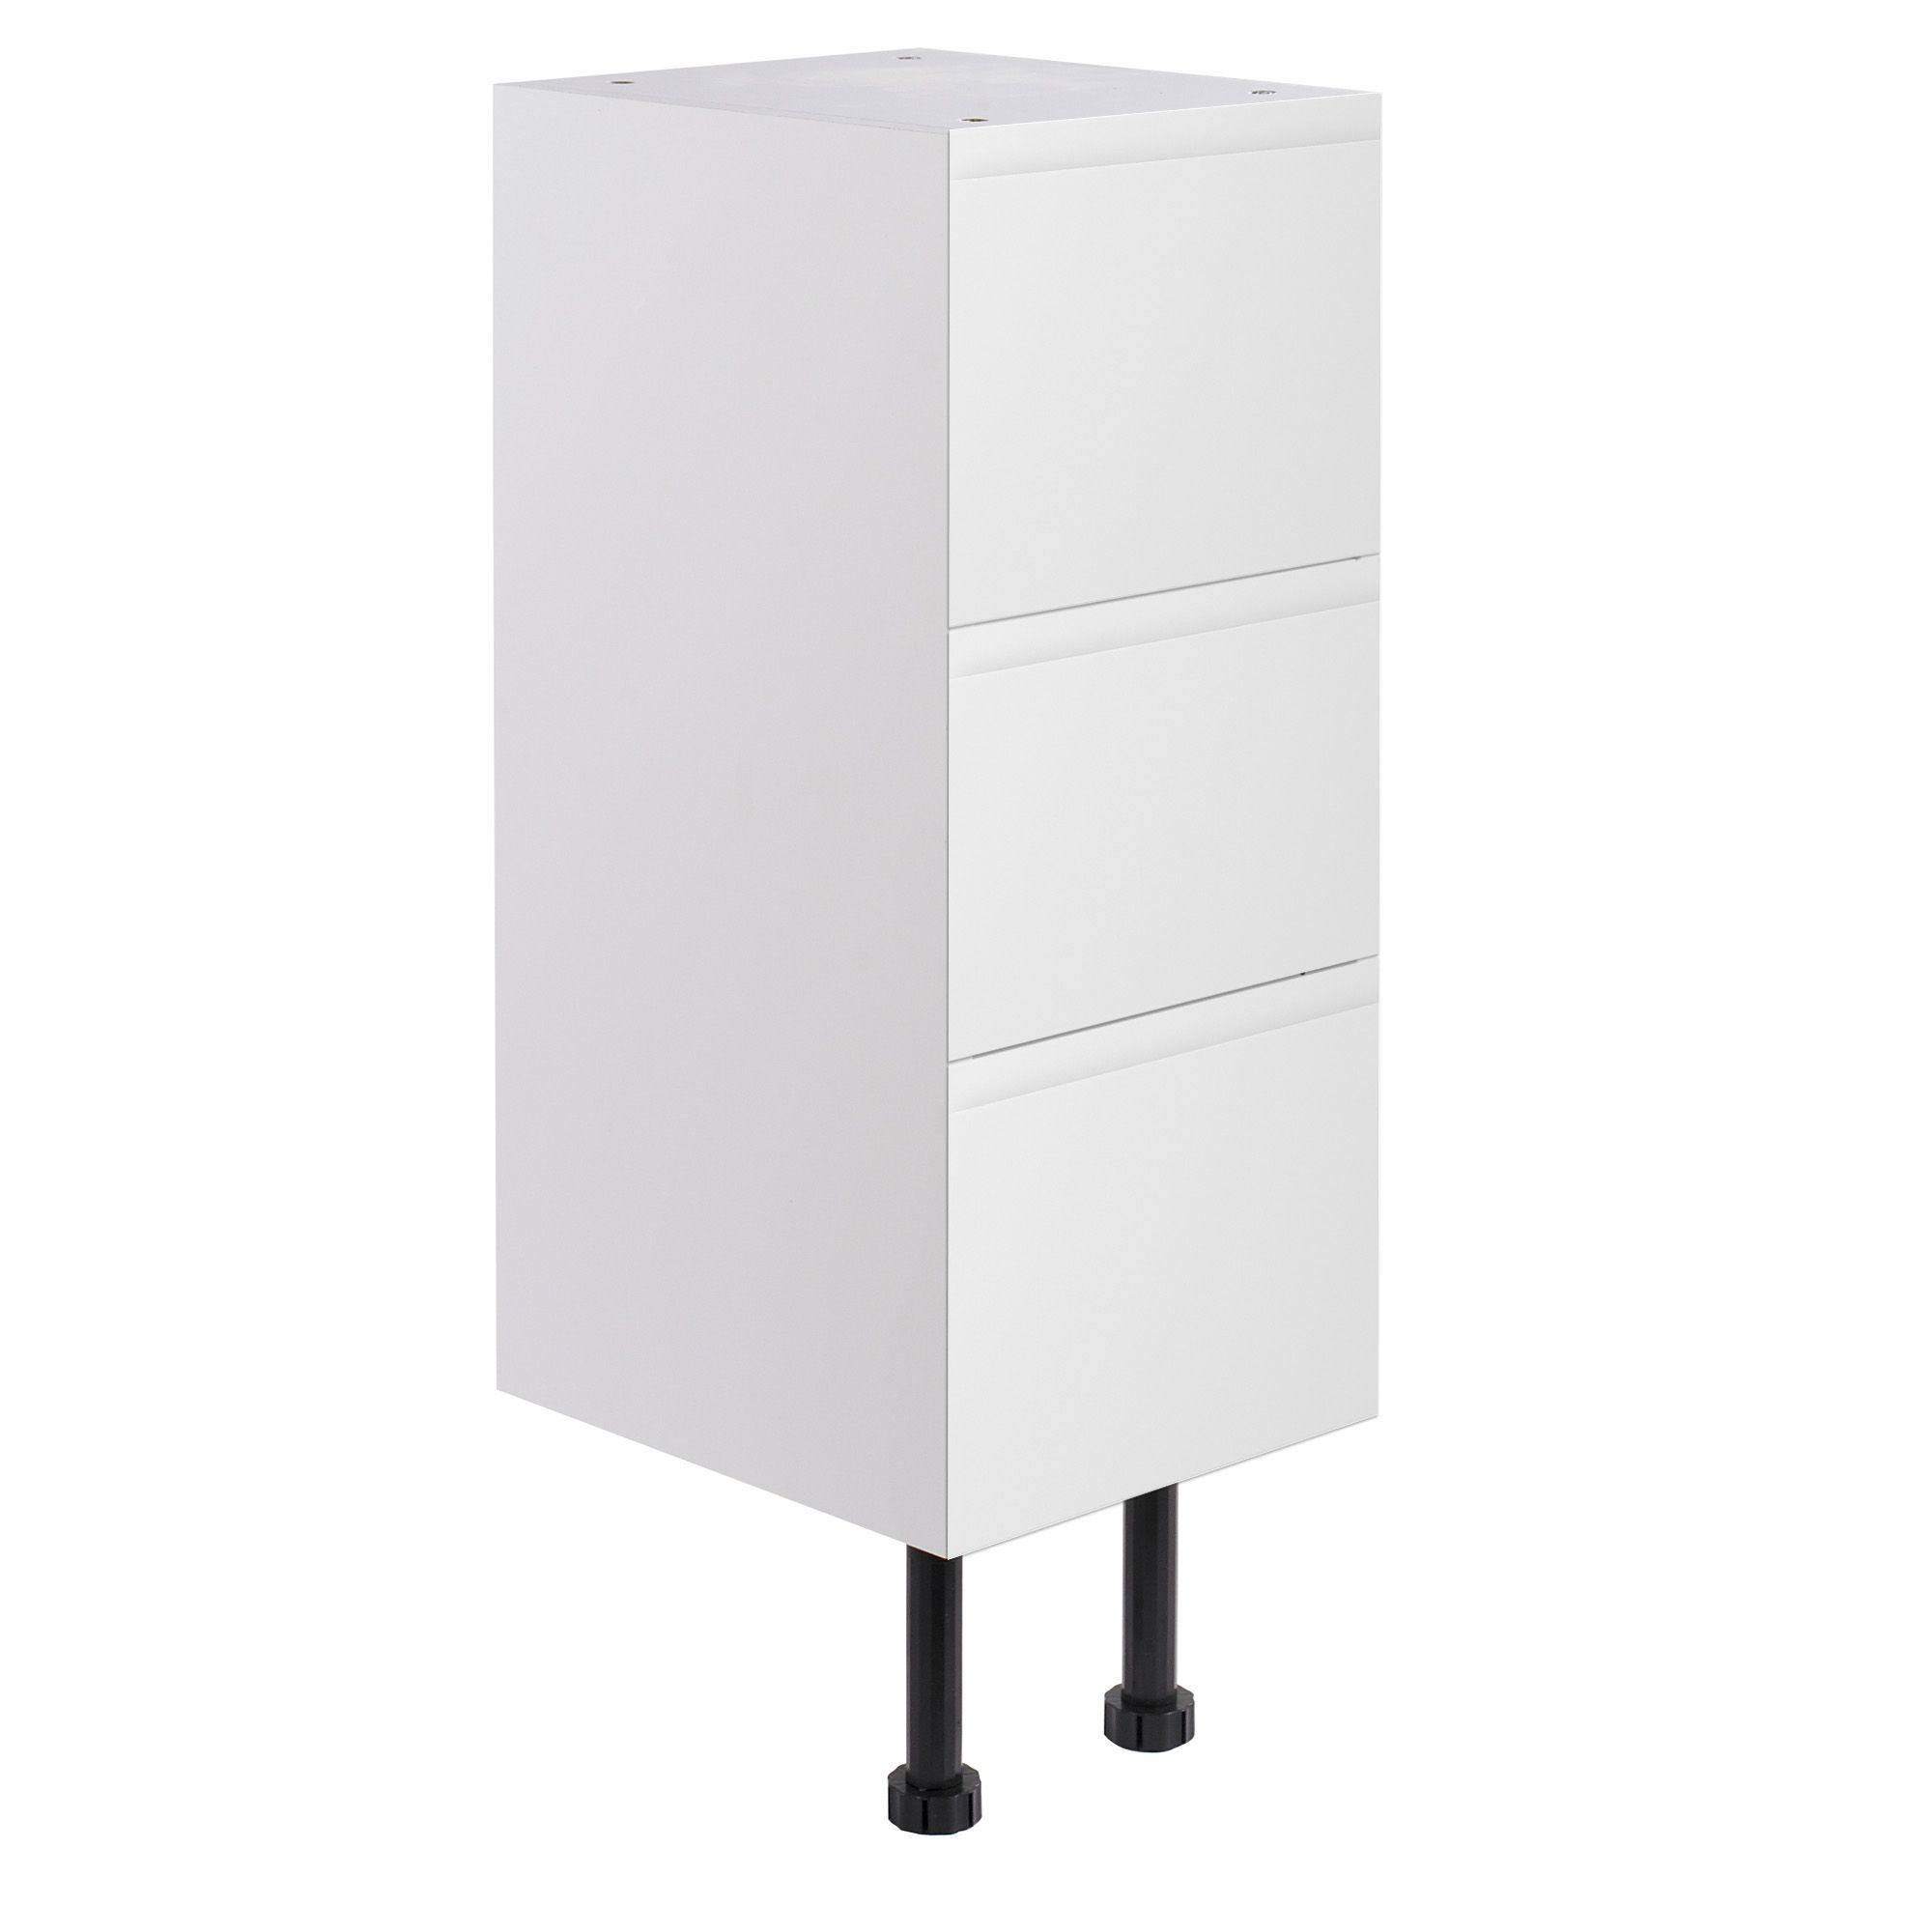 Cooke & Lewis Marletti Gloss White Narrow 3 Drawer Base Unit, (w)300mm